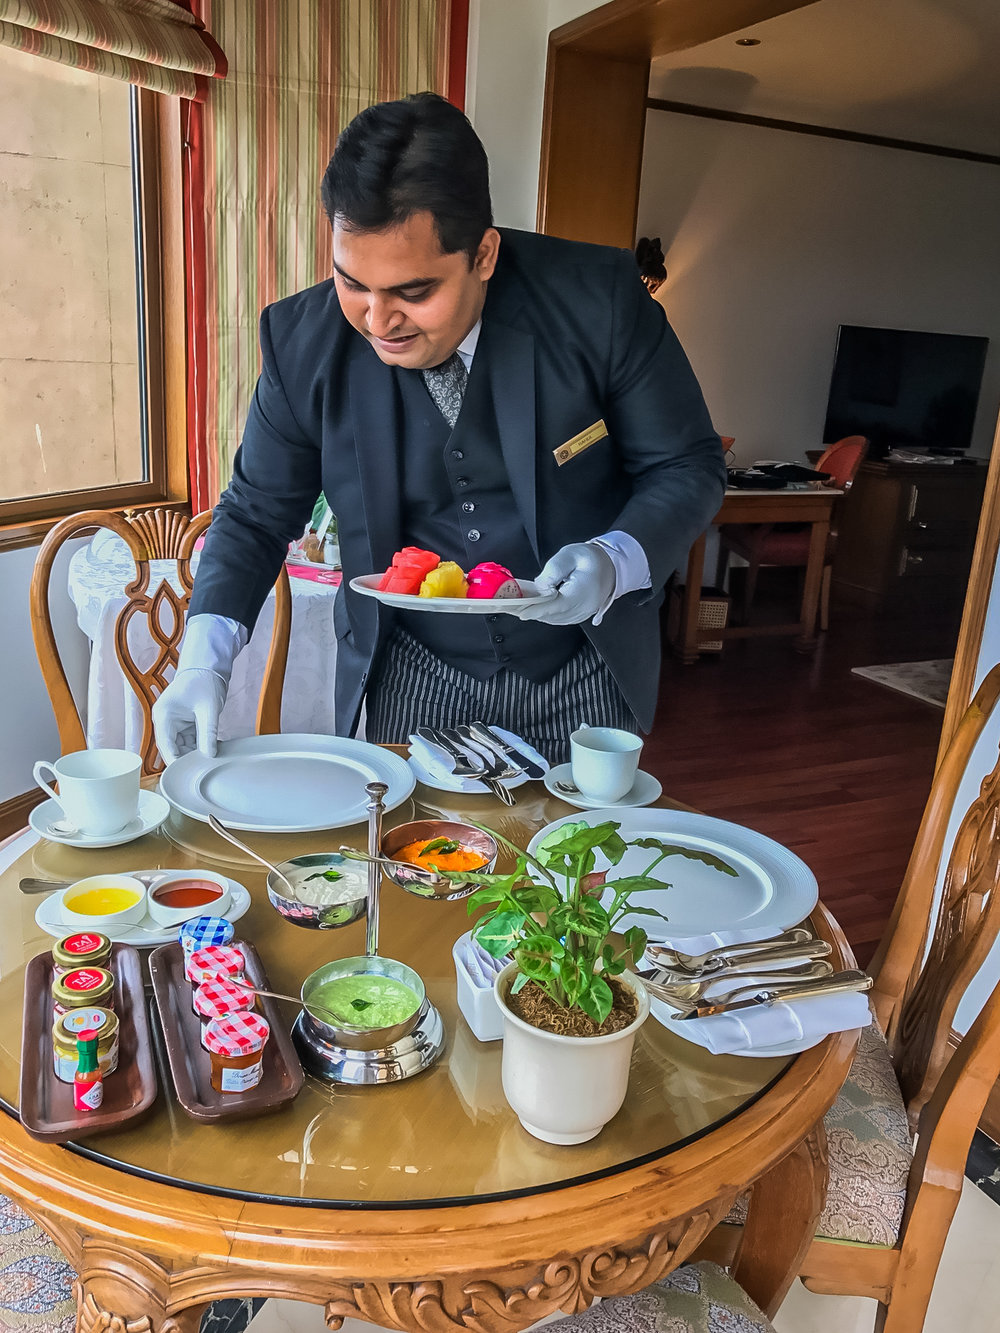 The amazing white gloved butler breakfast service at the Taj Hotel